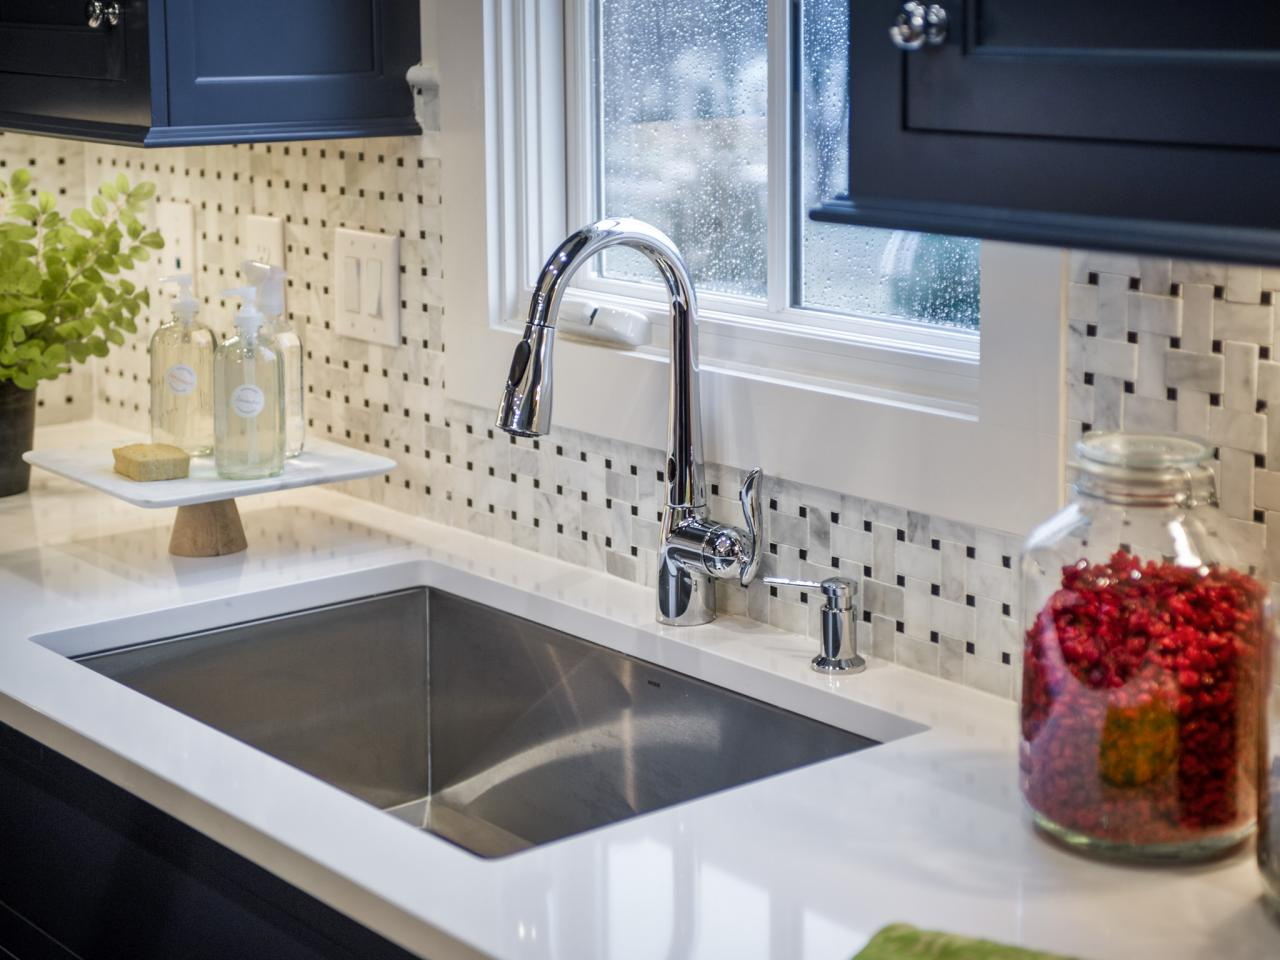 Kitchen Countertops Ideas : Quartz the new countertop contender hgtv